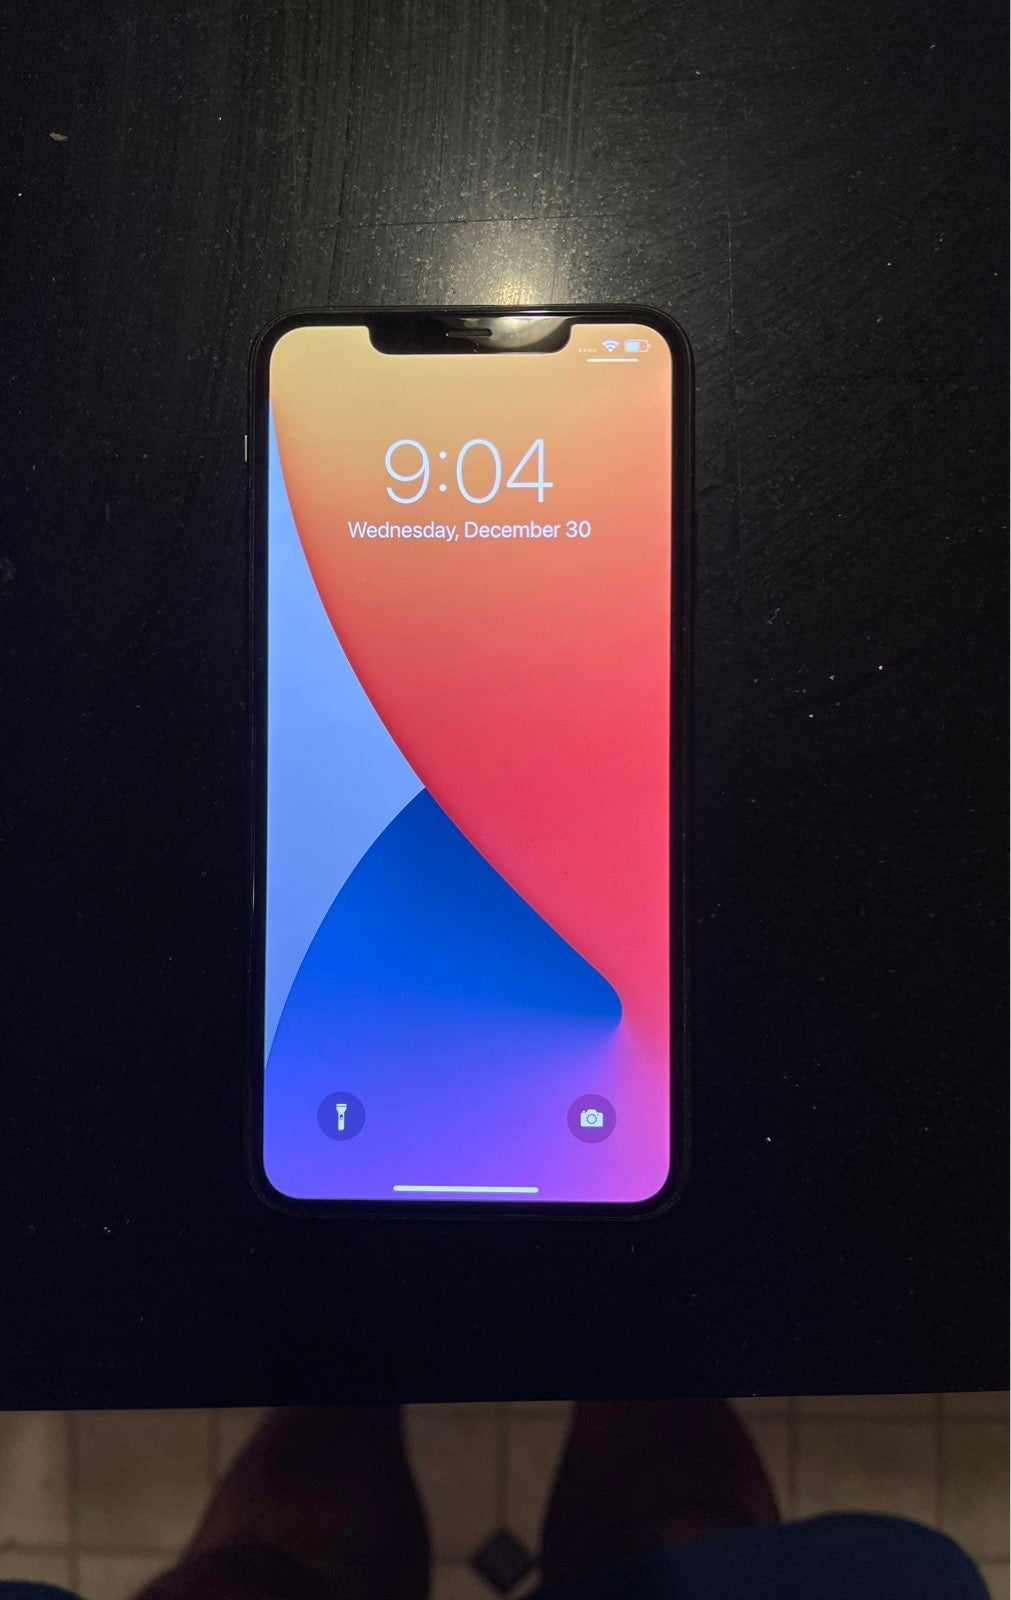 iphone 11 pro max unlocked 256gb